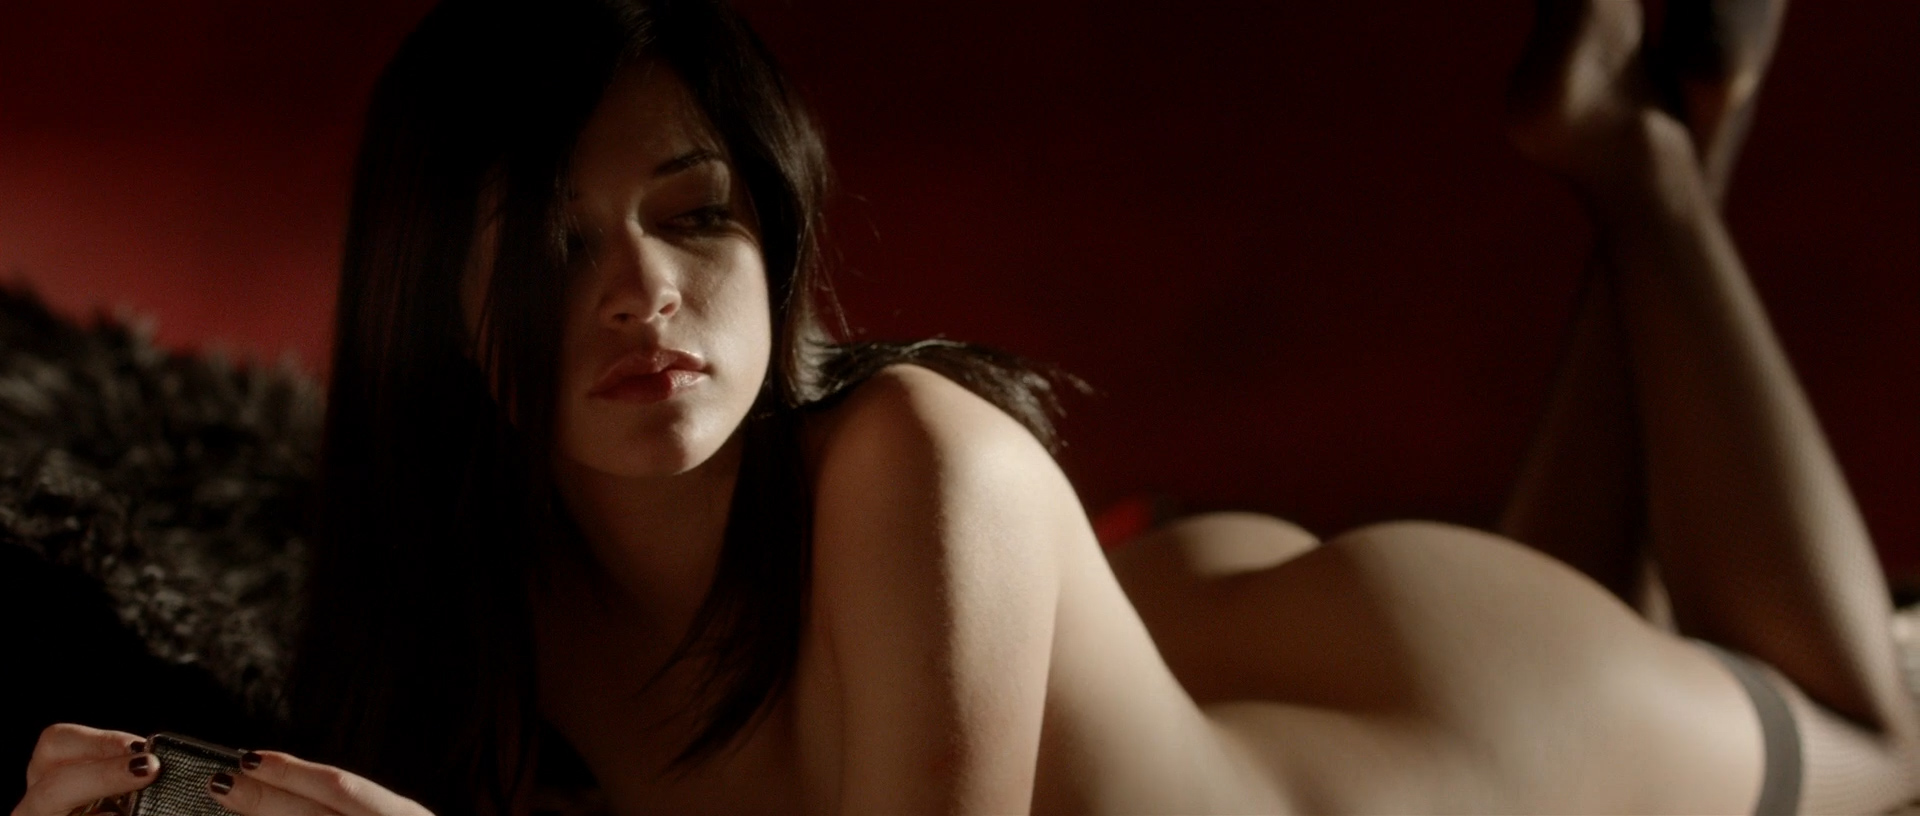 Alexis Knapp nude butt naked and very hot and few others full nude - The Anomaly (2014) hd1080p (7)